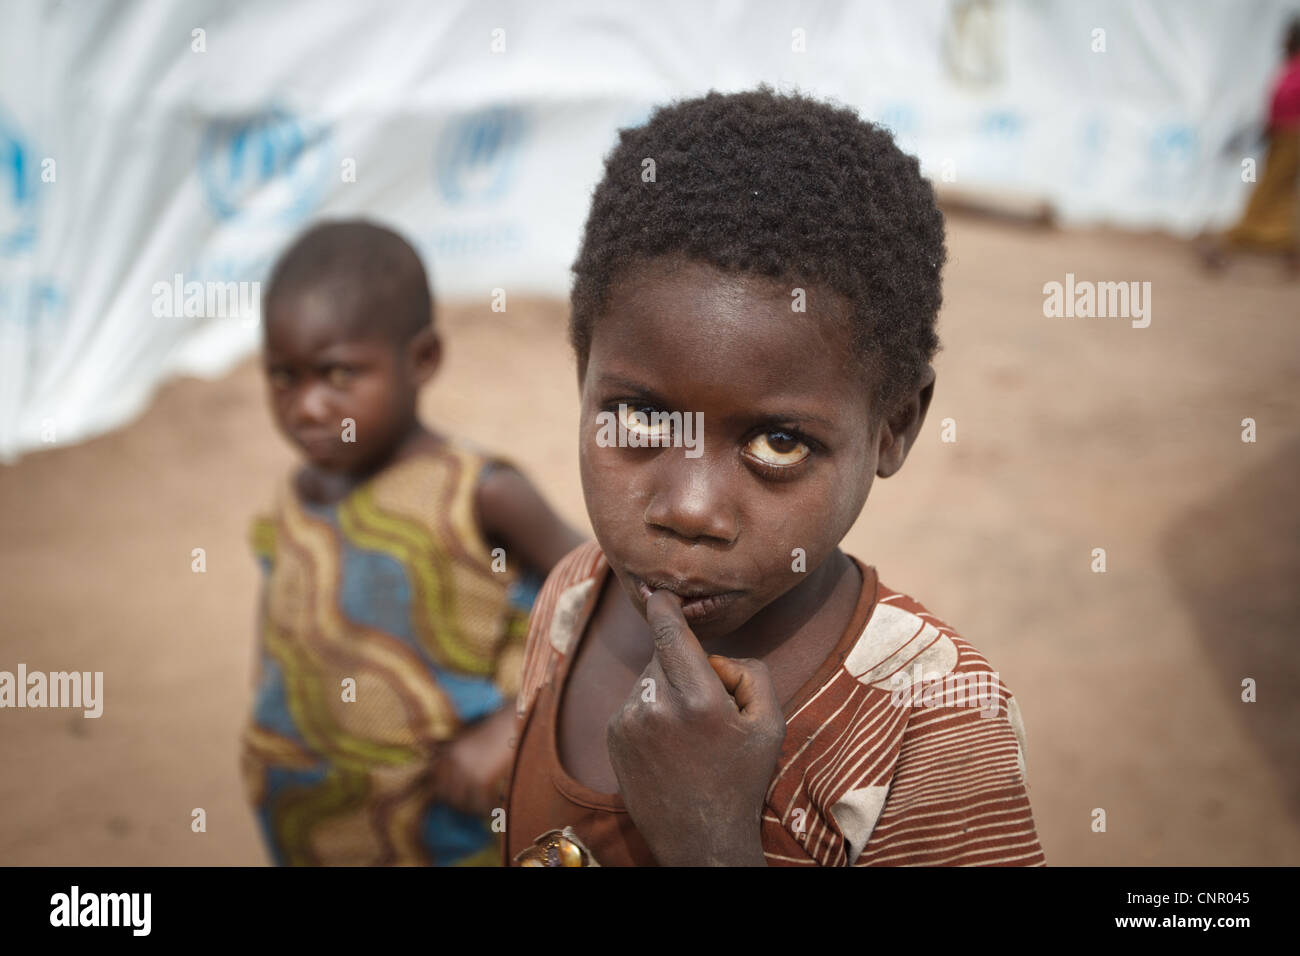 Children stand between basic shelters made of tarp at the Miketo IDP settlement, Katanga province, Democratic Republic - Stock Image